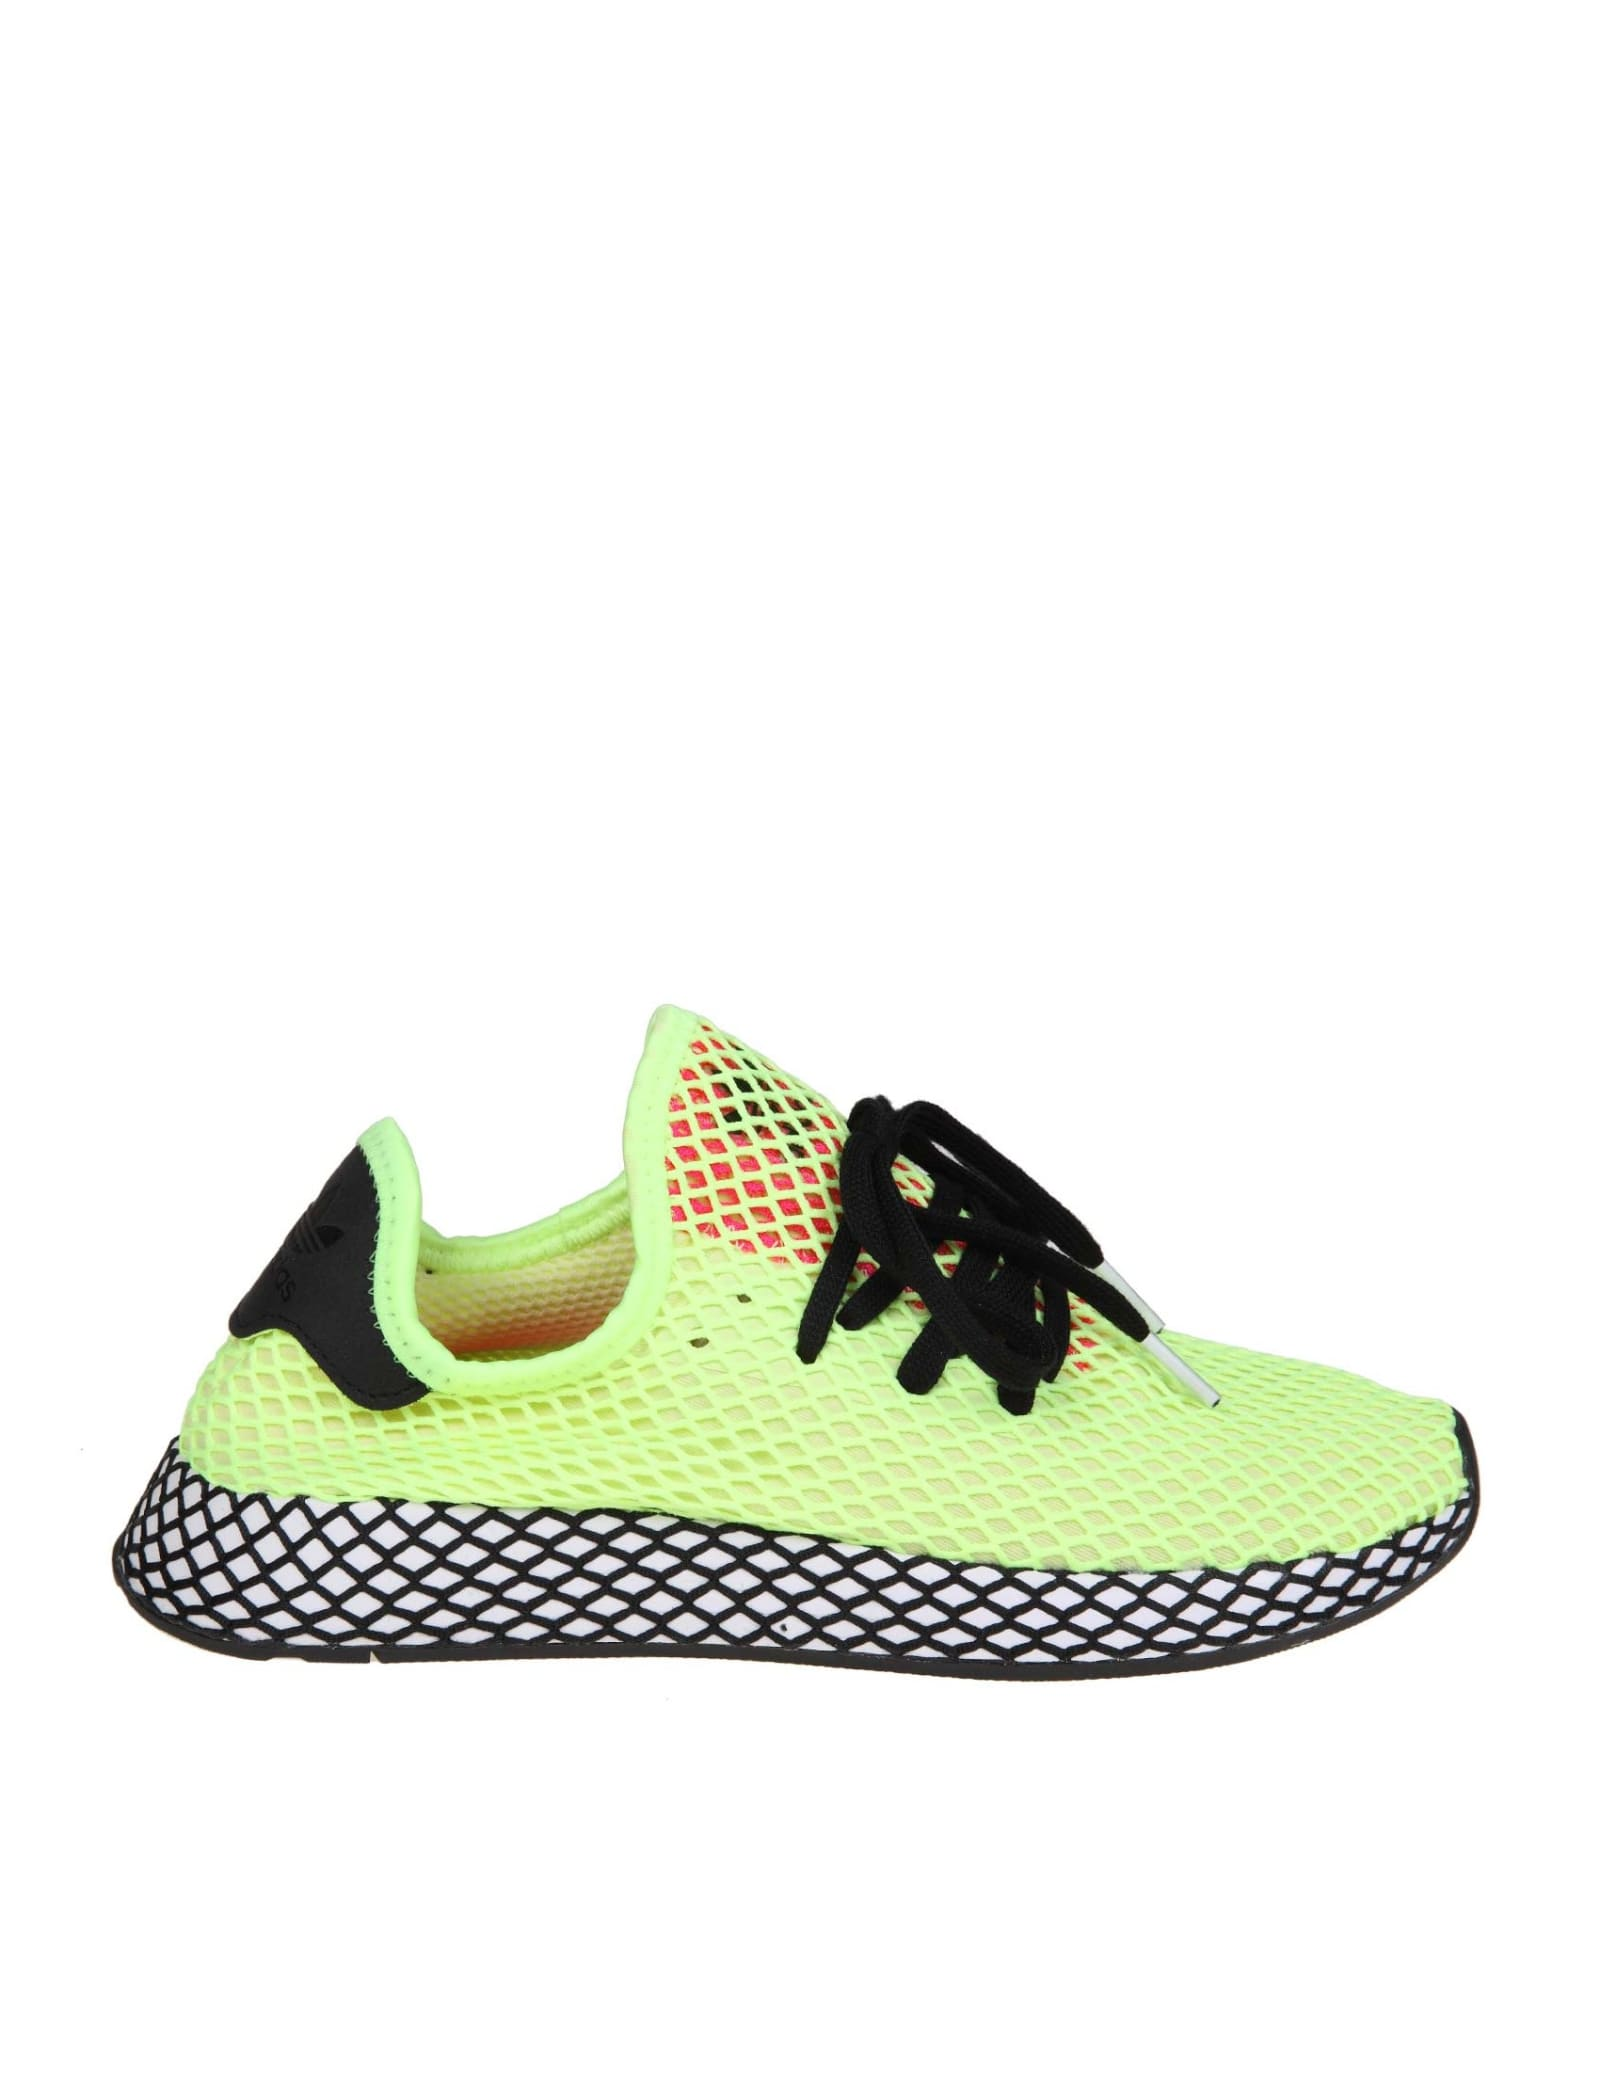 Adidas Sneakers Deerupt Runner In Stretch Fabric Yellow Fluo